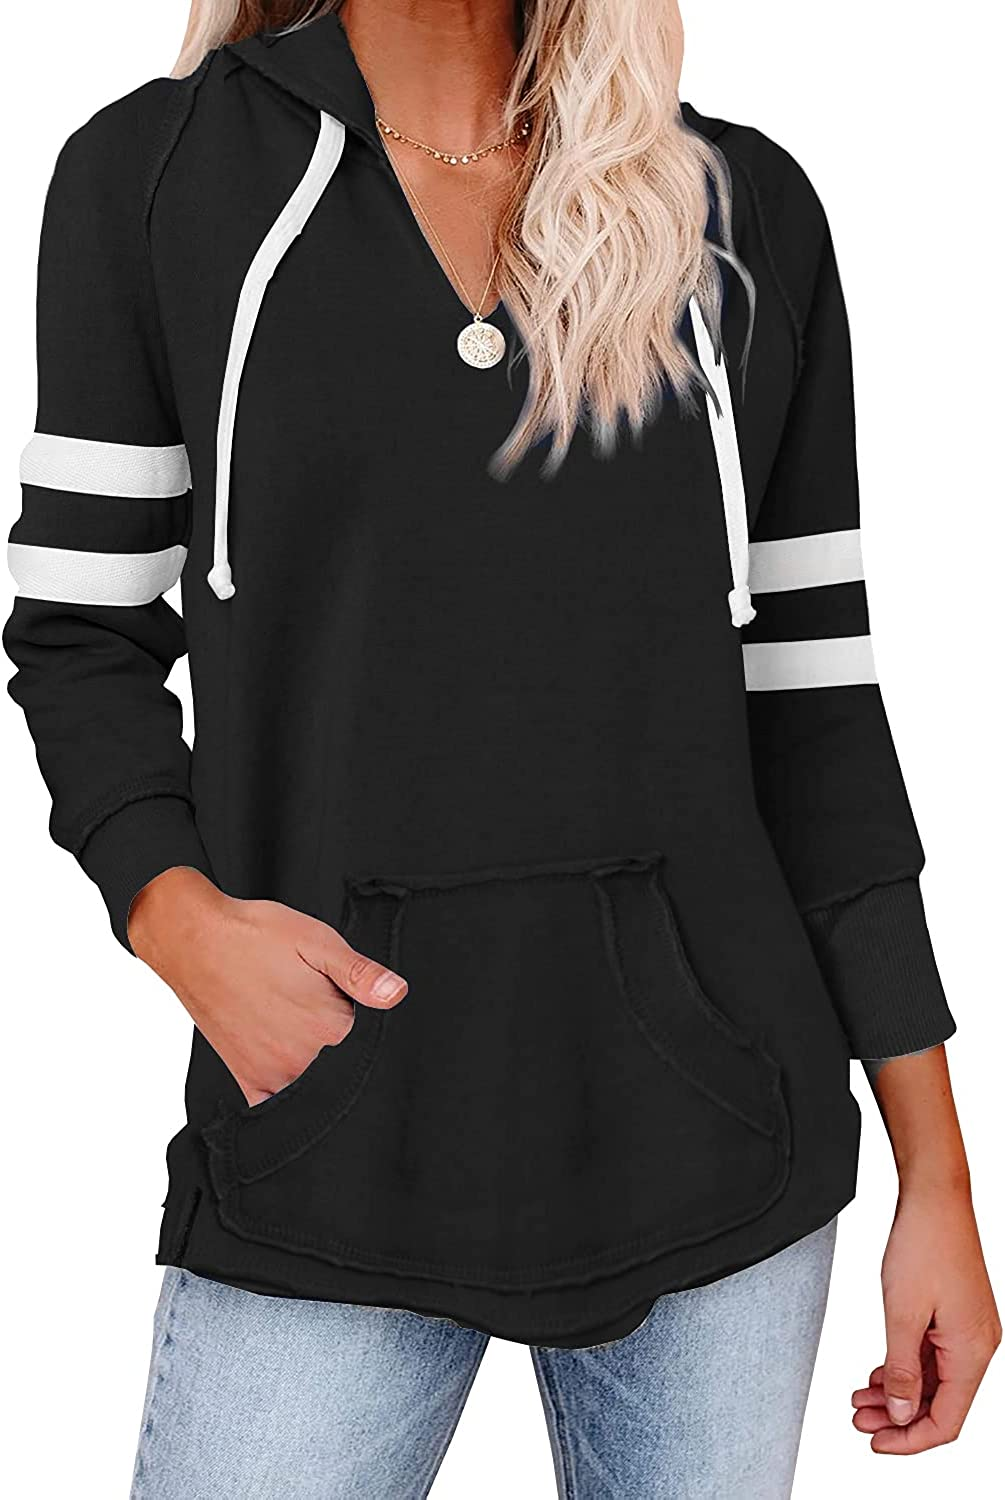 Womens V Neck Hoodies with Pockets Long Sleeve Striped Pullover Tops Sweatshirt